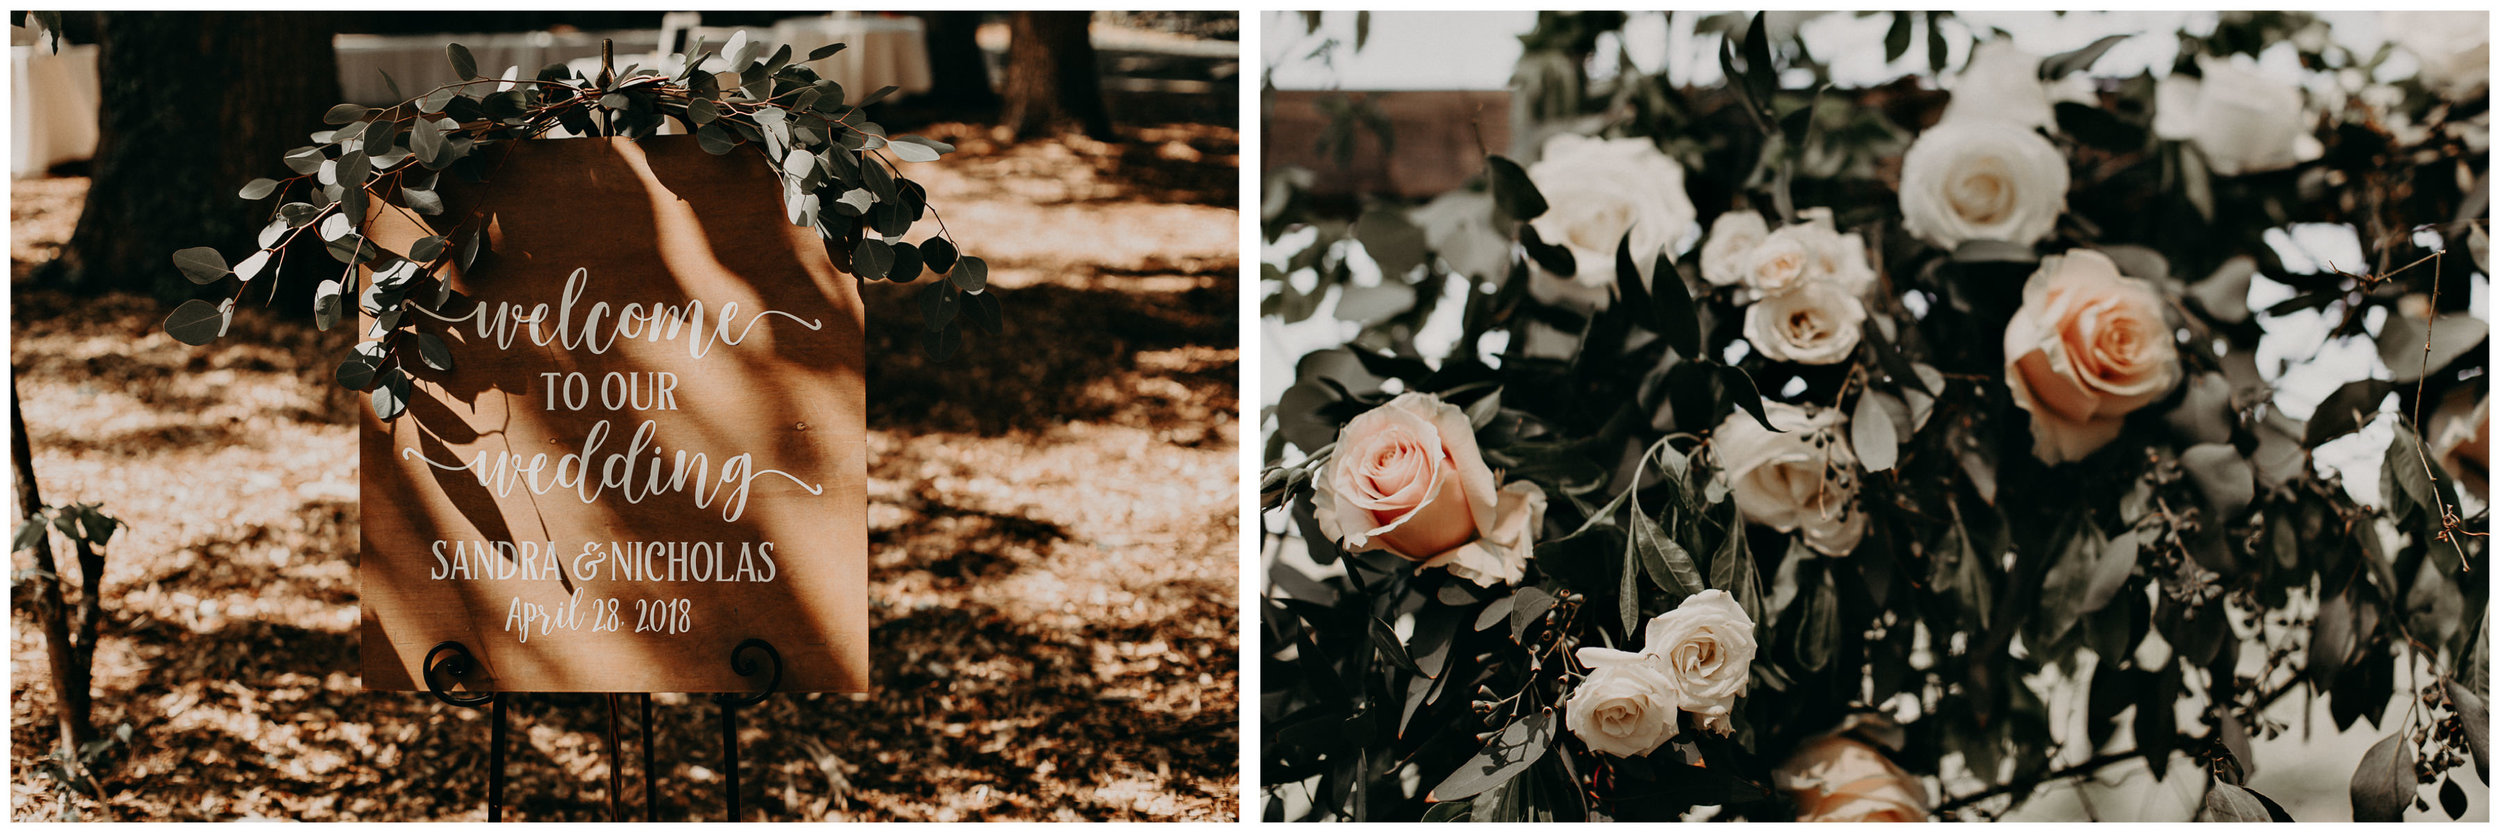 32 Garden wedding - intimate wedding atlanta wedding photographer.jpg